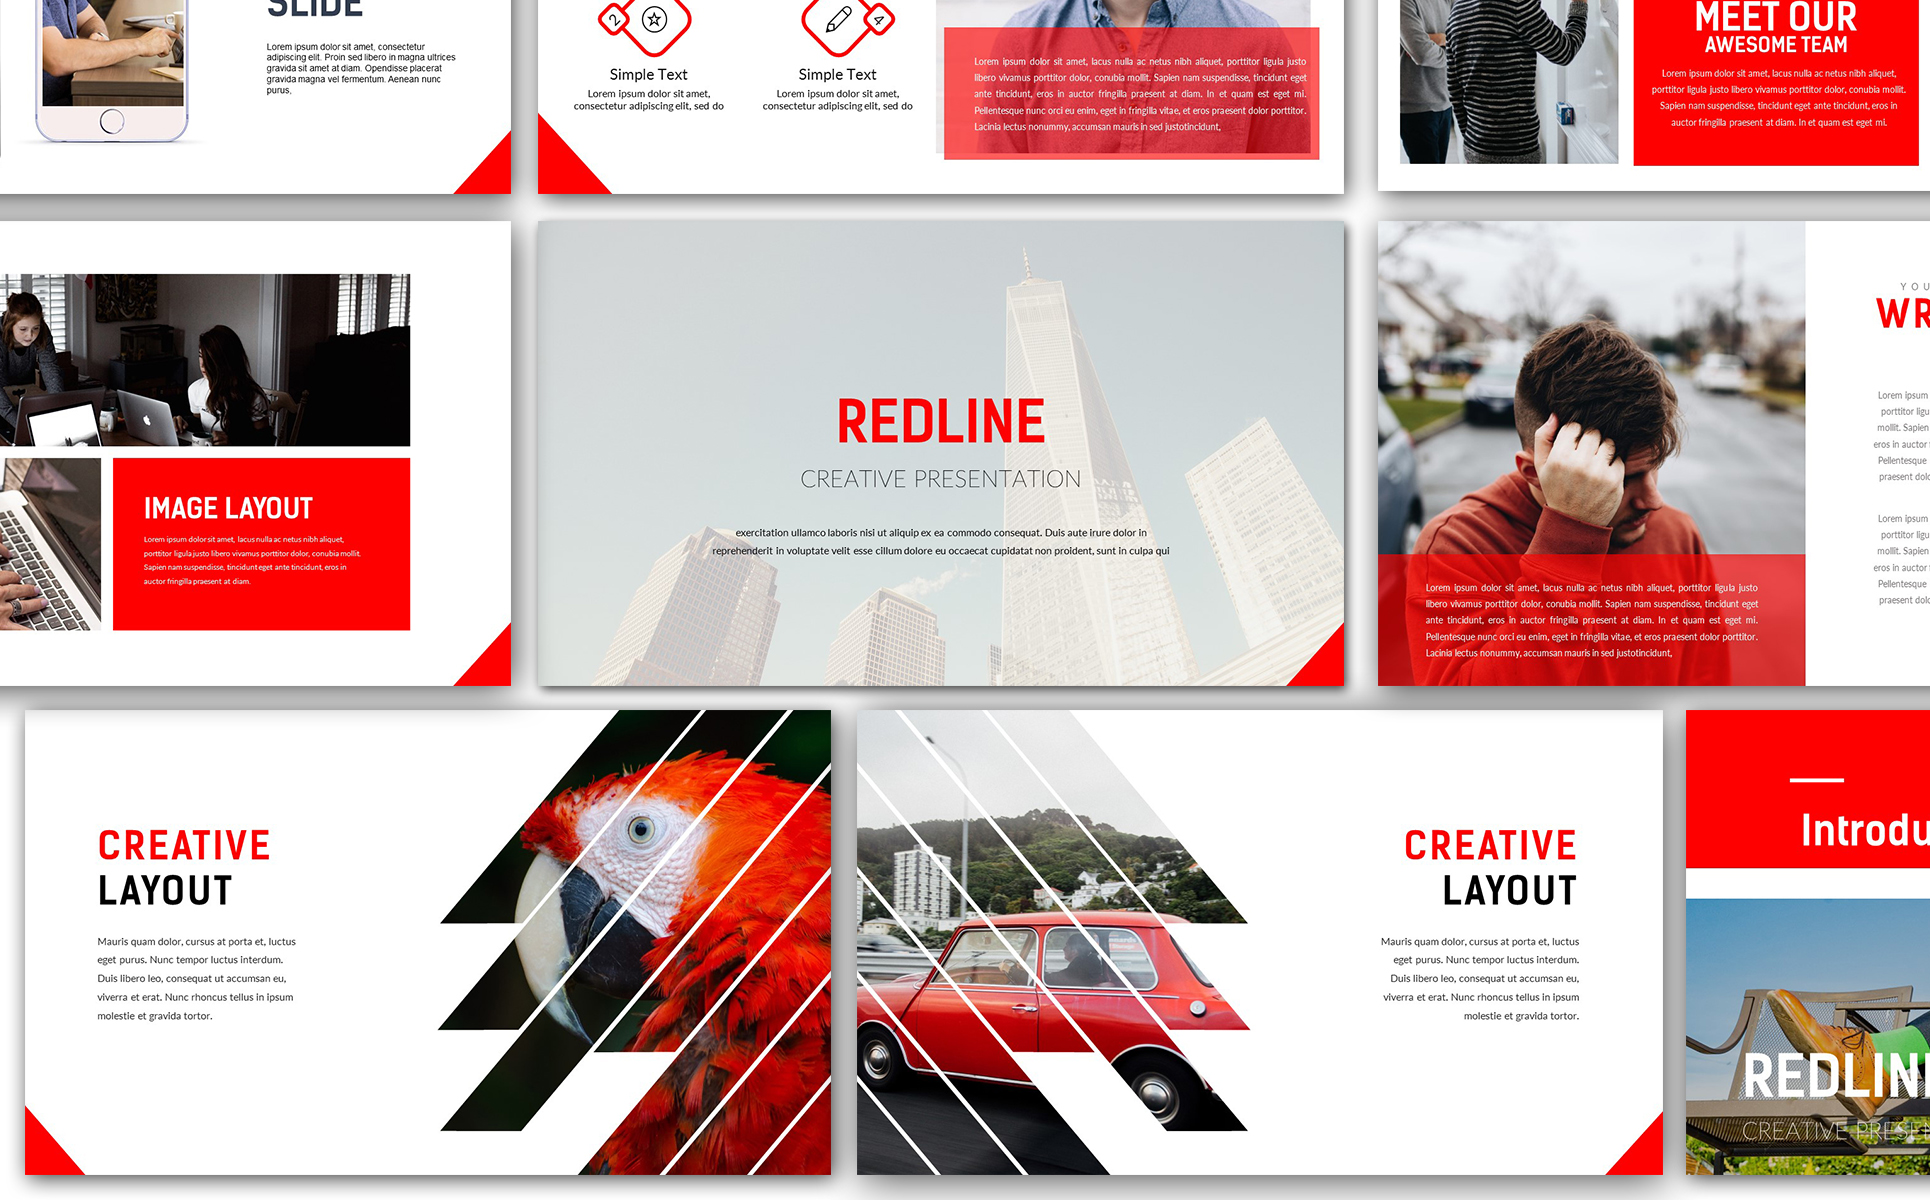 20 Best PowerPoint Templates July 2018  Improve